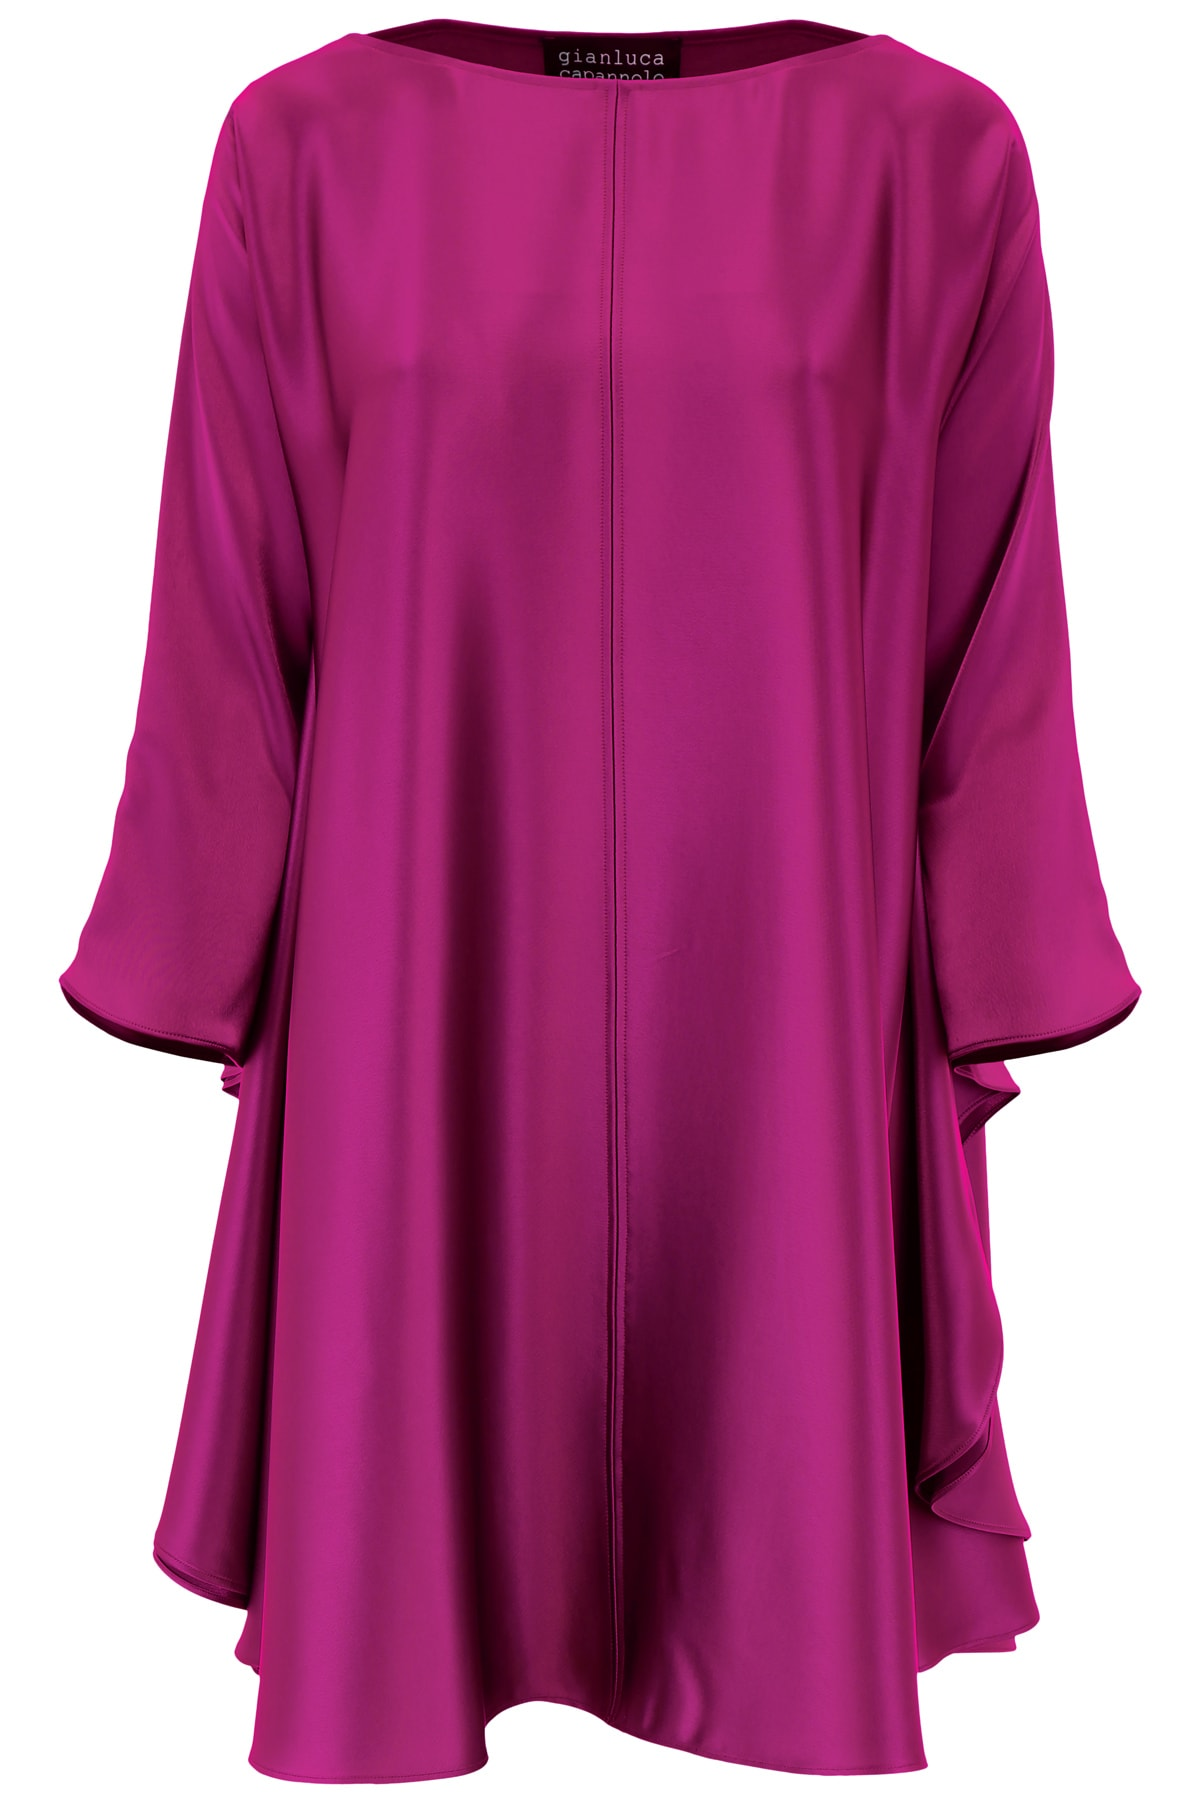 Buy Gianluca Capannolo Bat Sleeves Dress online, shop Gianluca Capannolo with free shipping